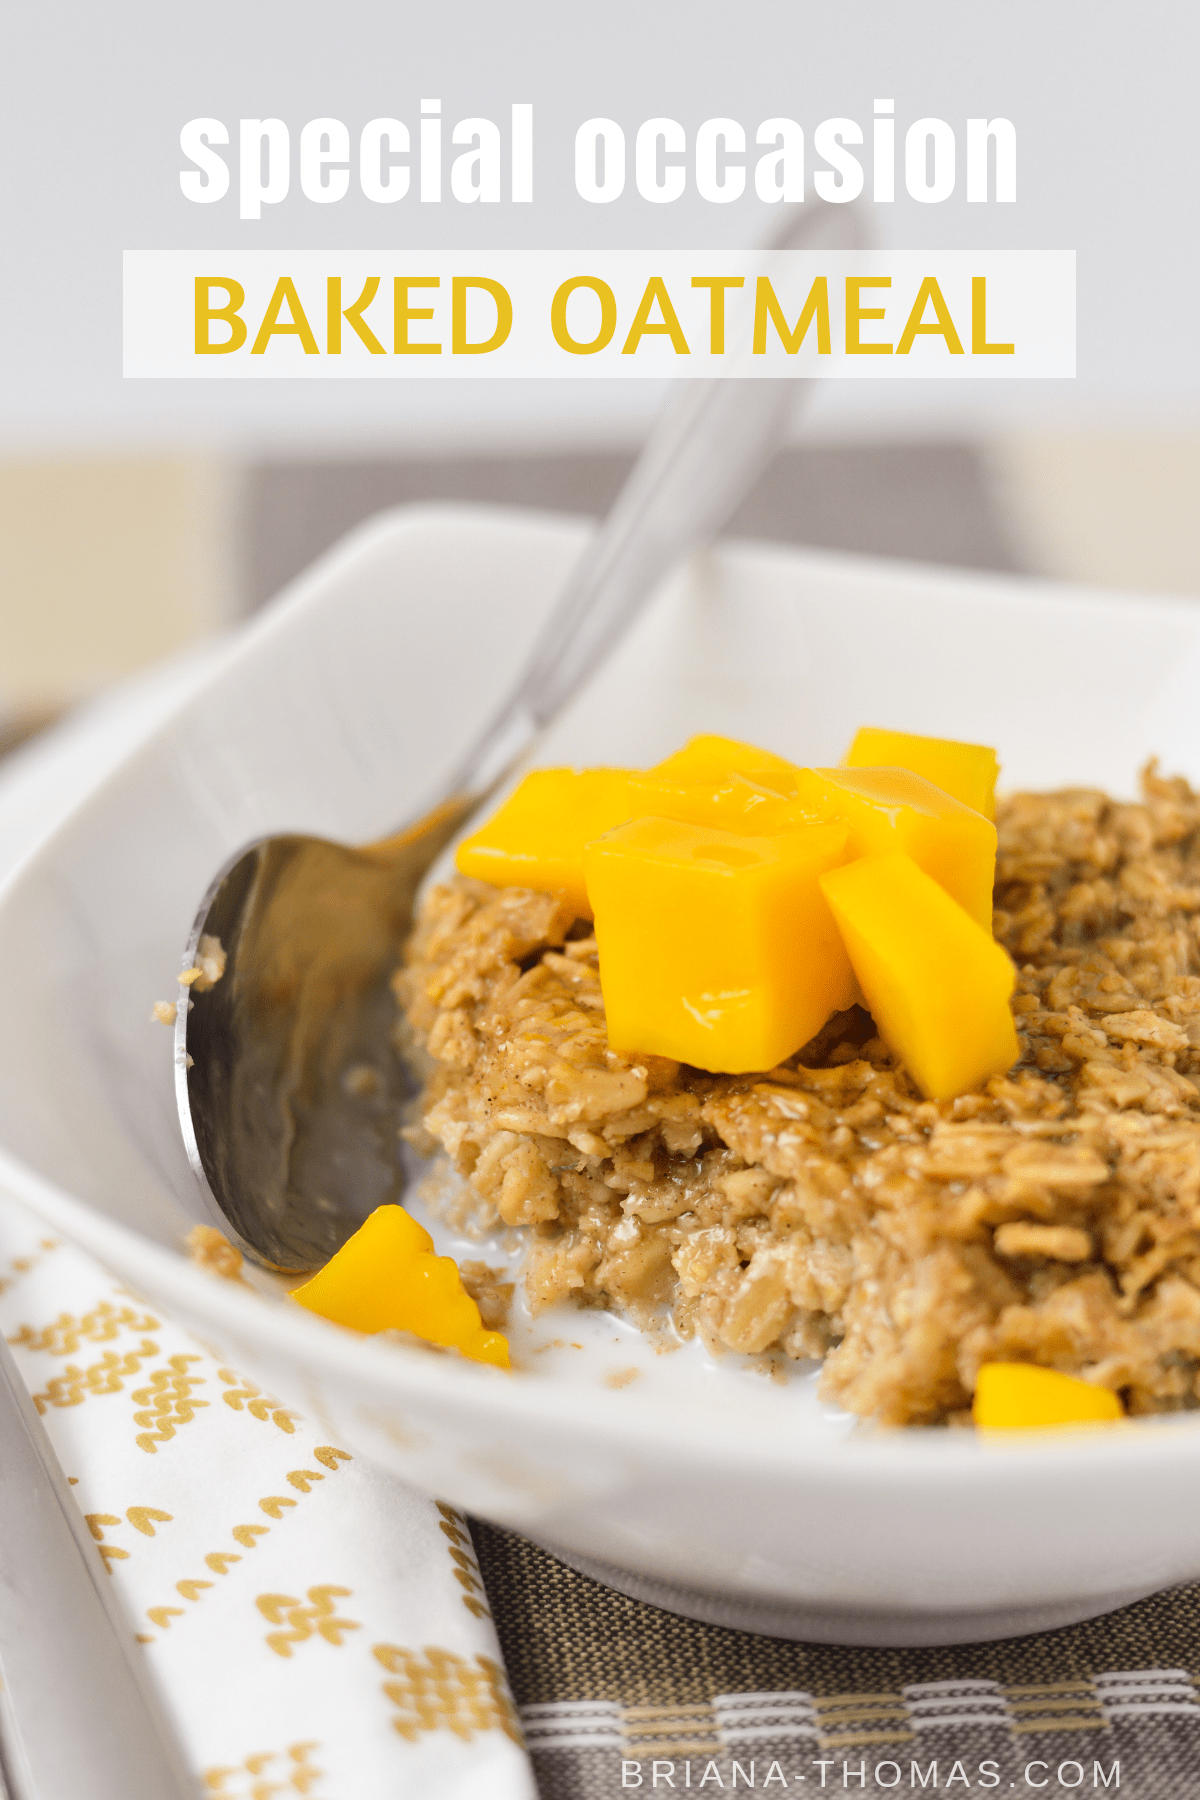 This Special Occasion Baked Oatmeal is perfect for kids and company! It's a THM Crossover and is free of refined sugar. No special ingredients if you sub your favorite sweetener! Gluten, dairy, and nut free options